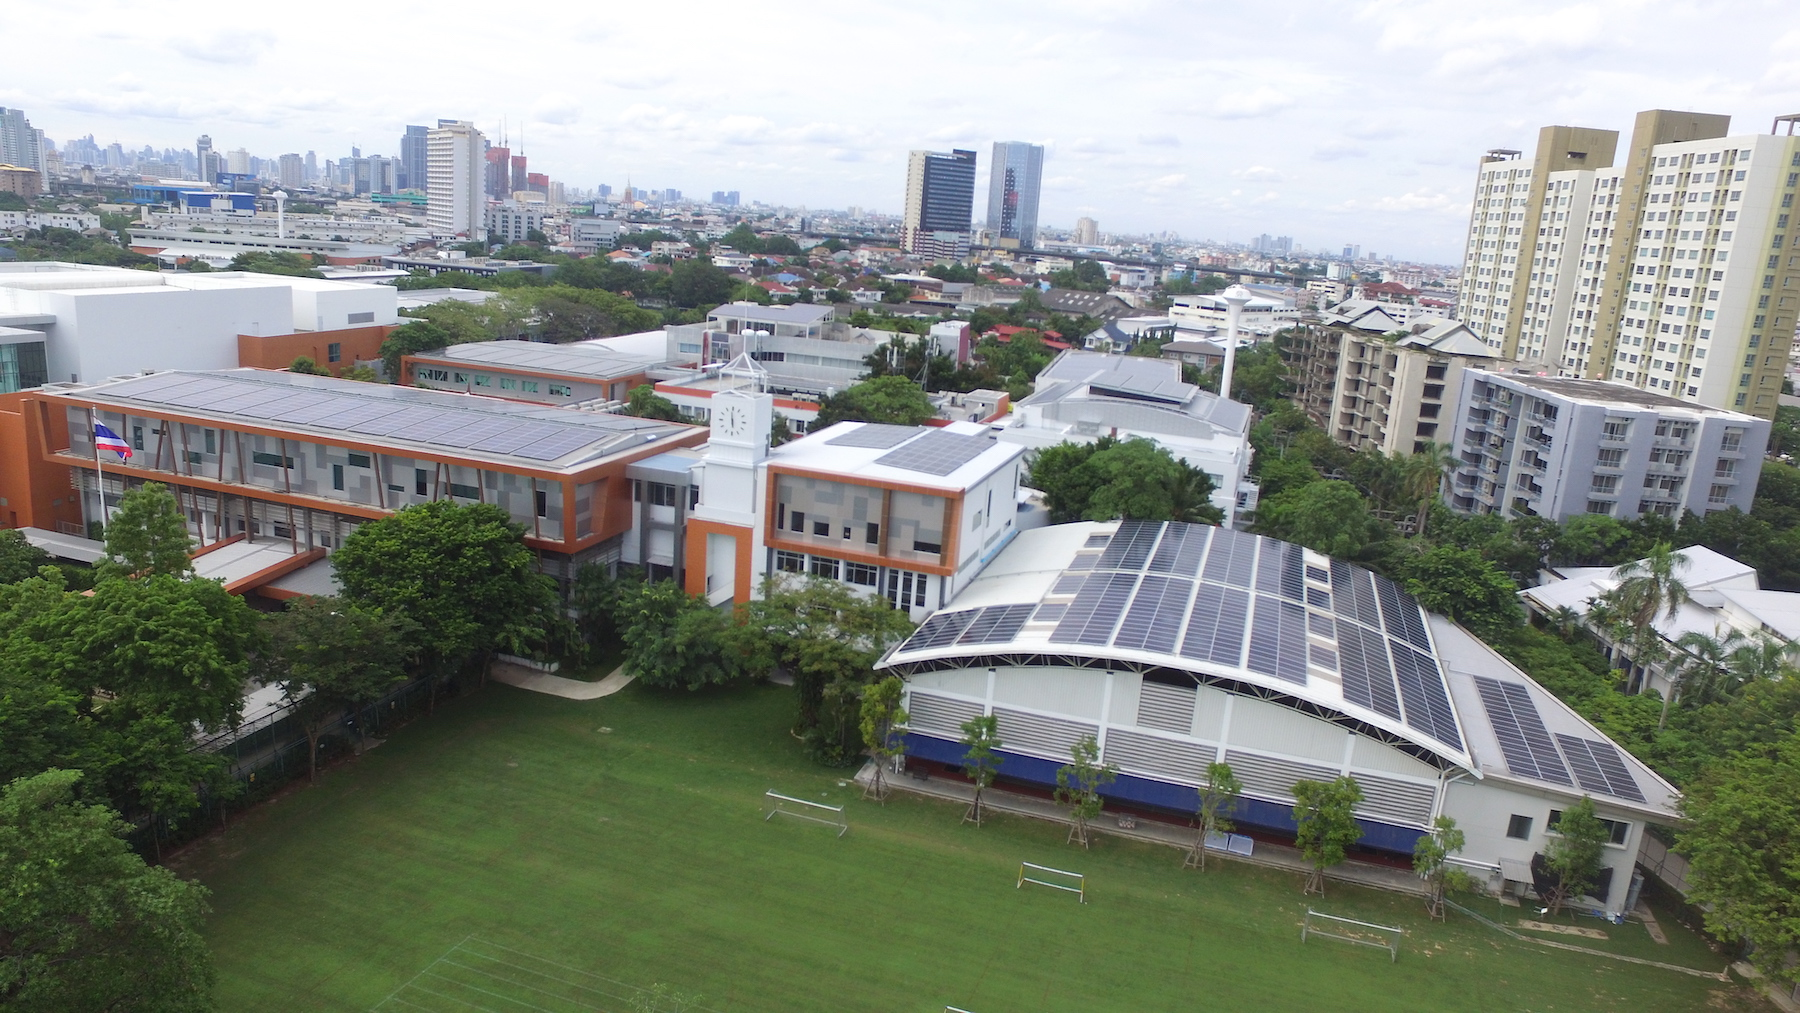 Solar panels were installed on every building